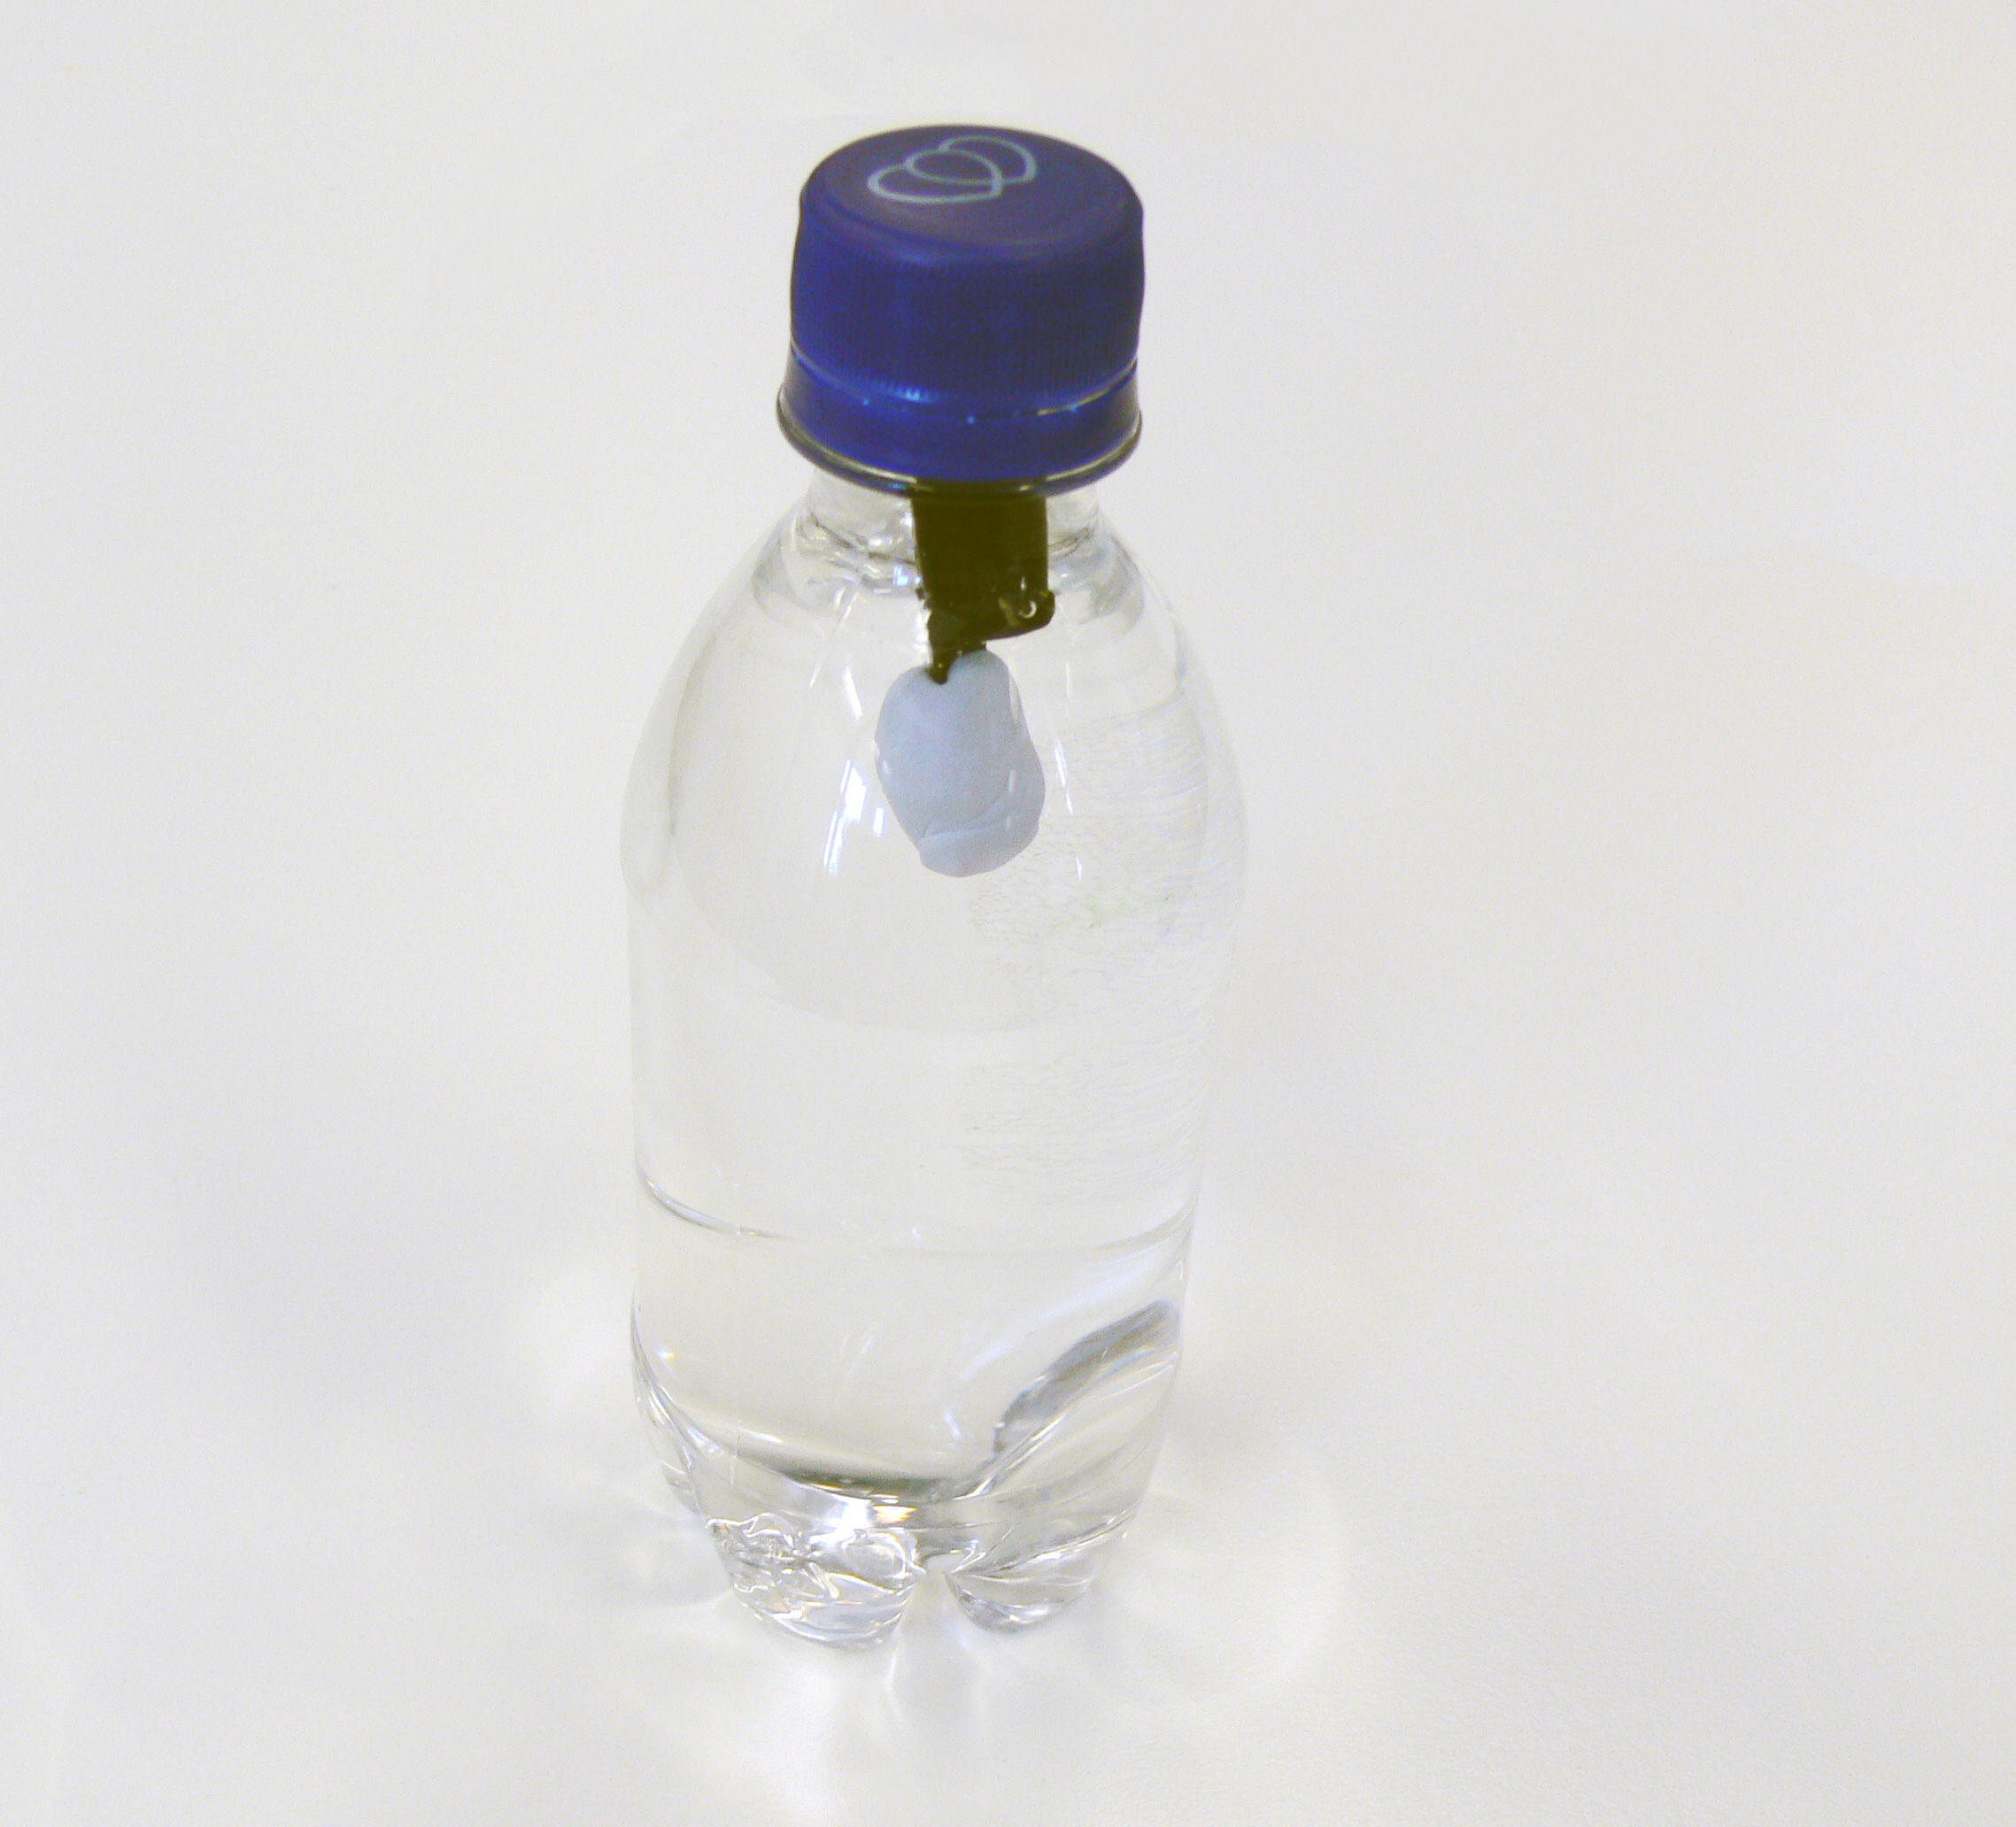 Bottle of water with floating pen lid  with blutack stuck to stem of pen lid